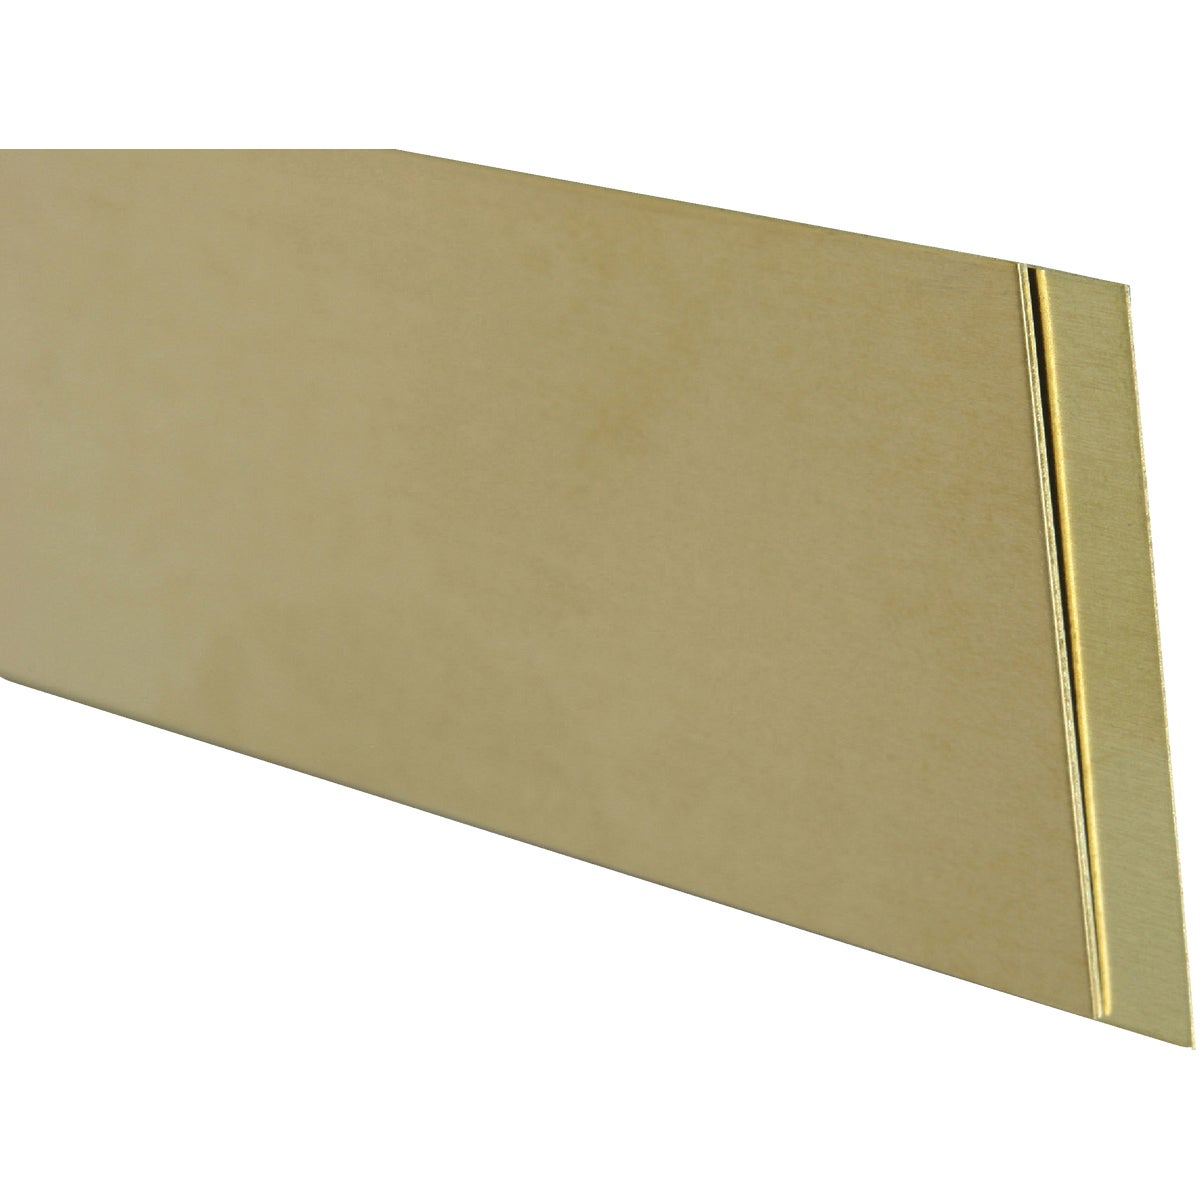 .032X2X12 BRASS STRIP - 244 by K&s Precision Metals